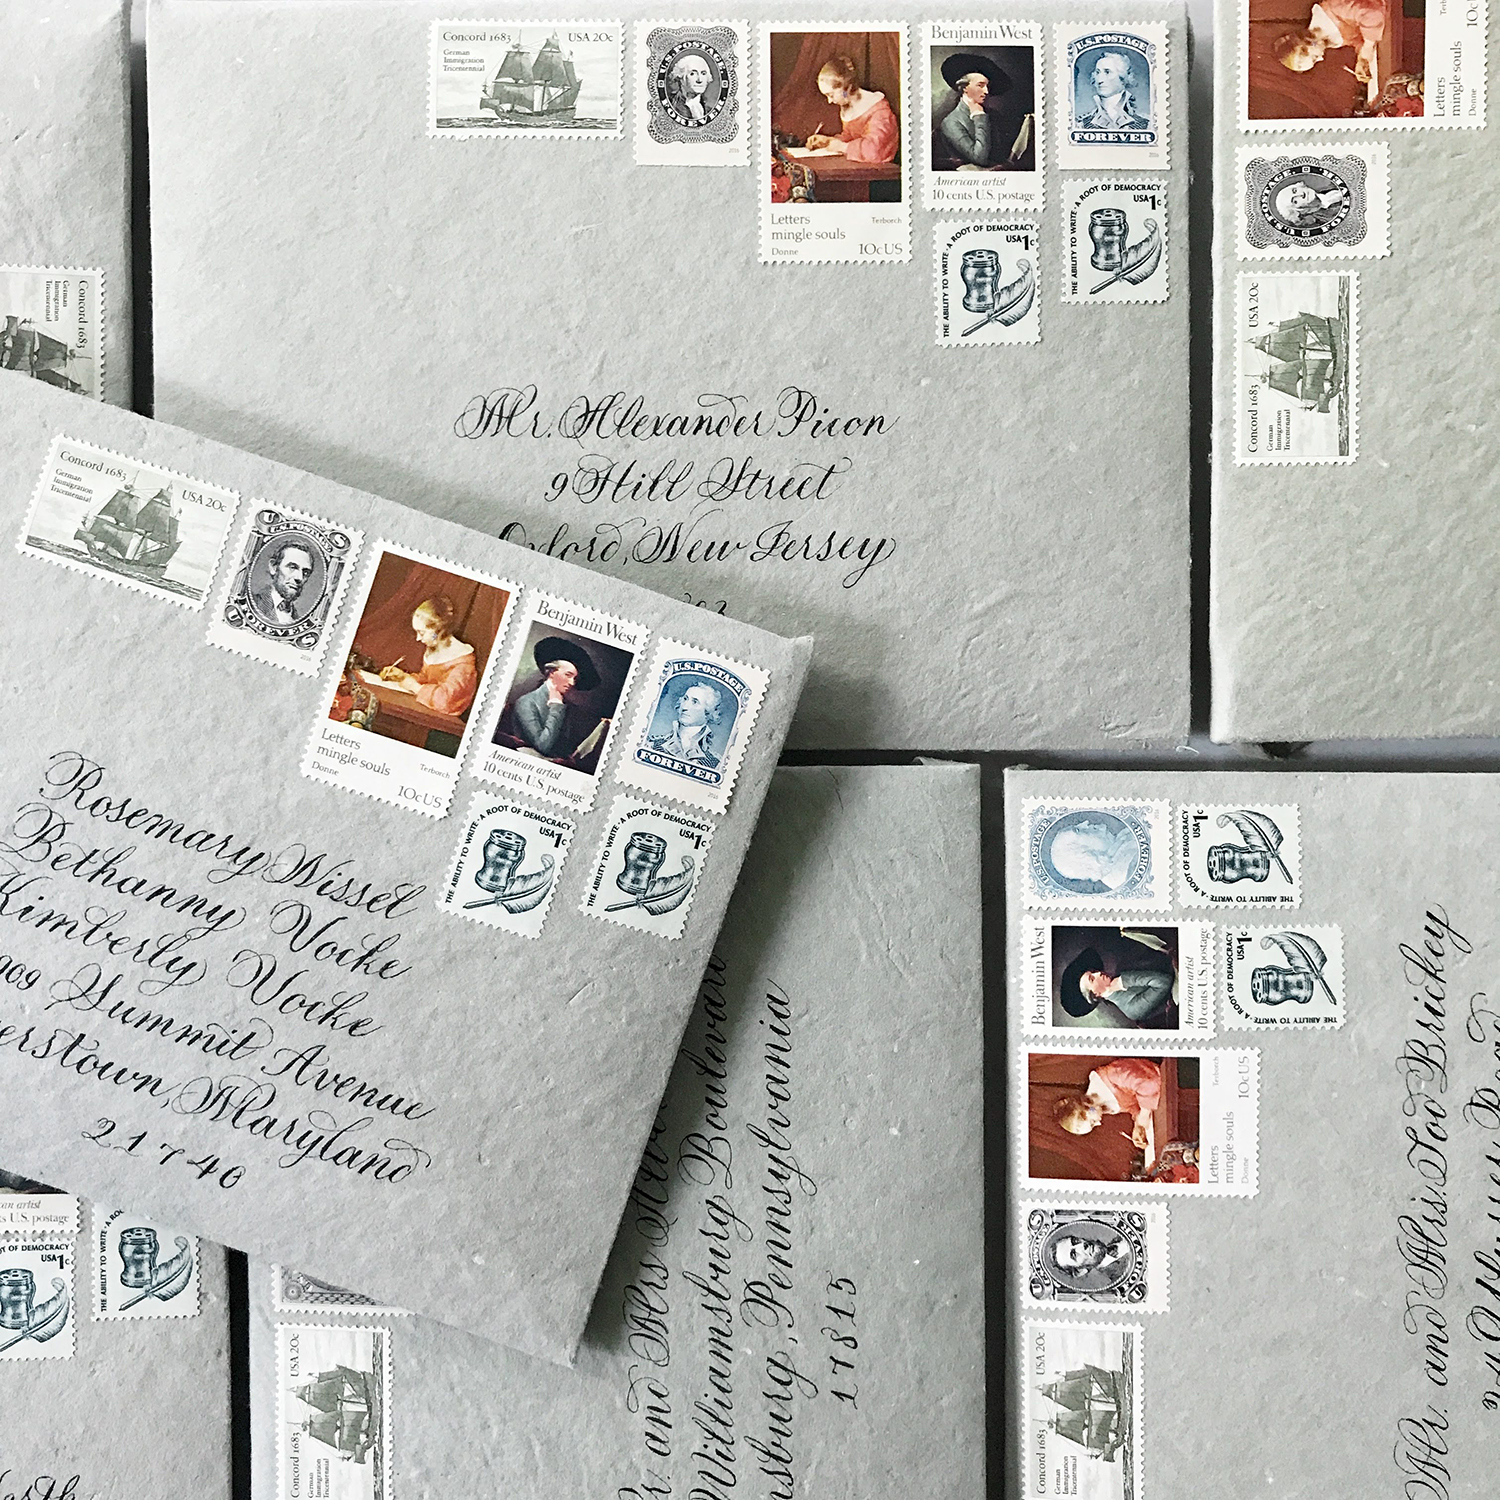 custom-calligraphy-envelope-addressing-by-leslie-and-paper-new-jersey-worldwide-with-curated-vintage-stamps-handmade-paper.jpg